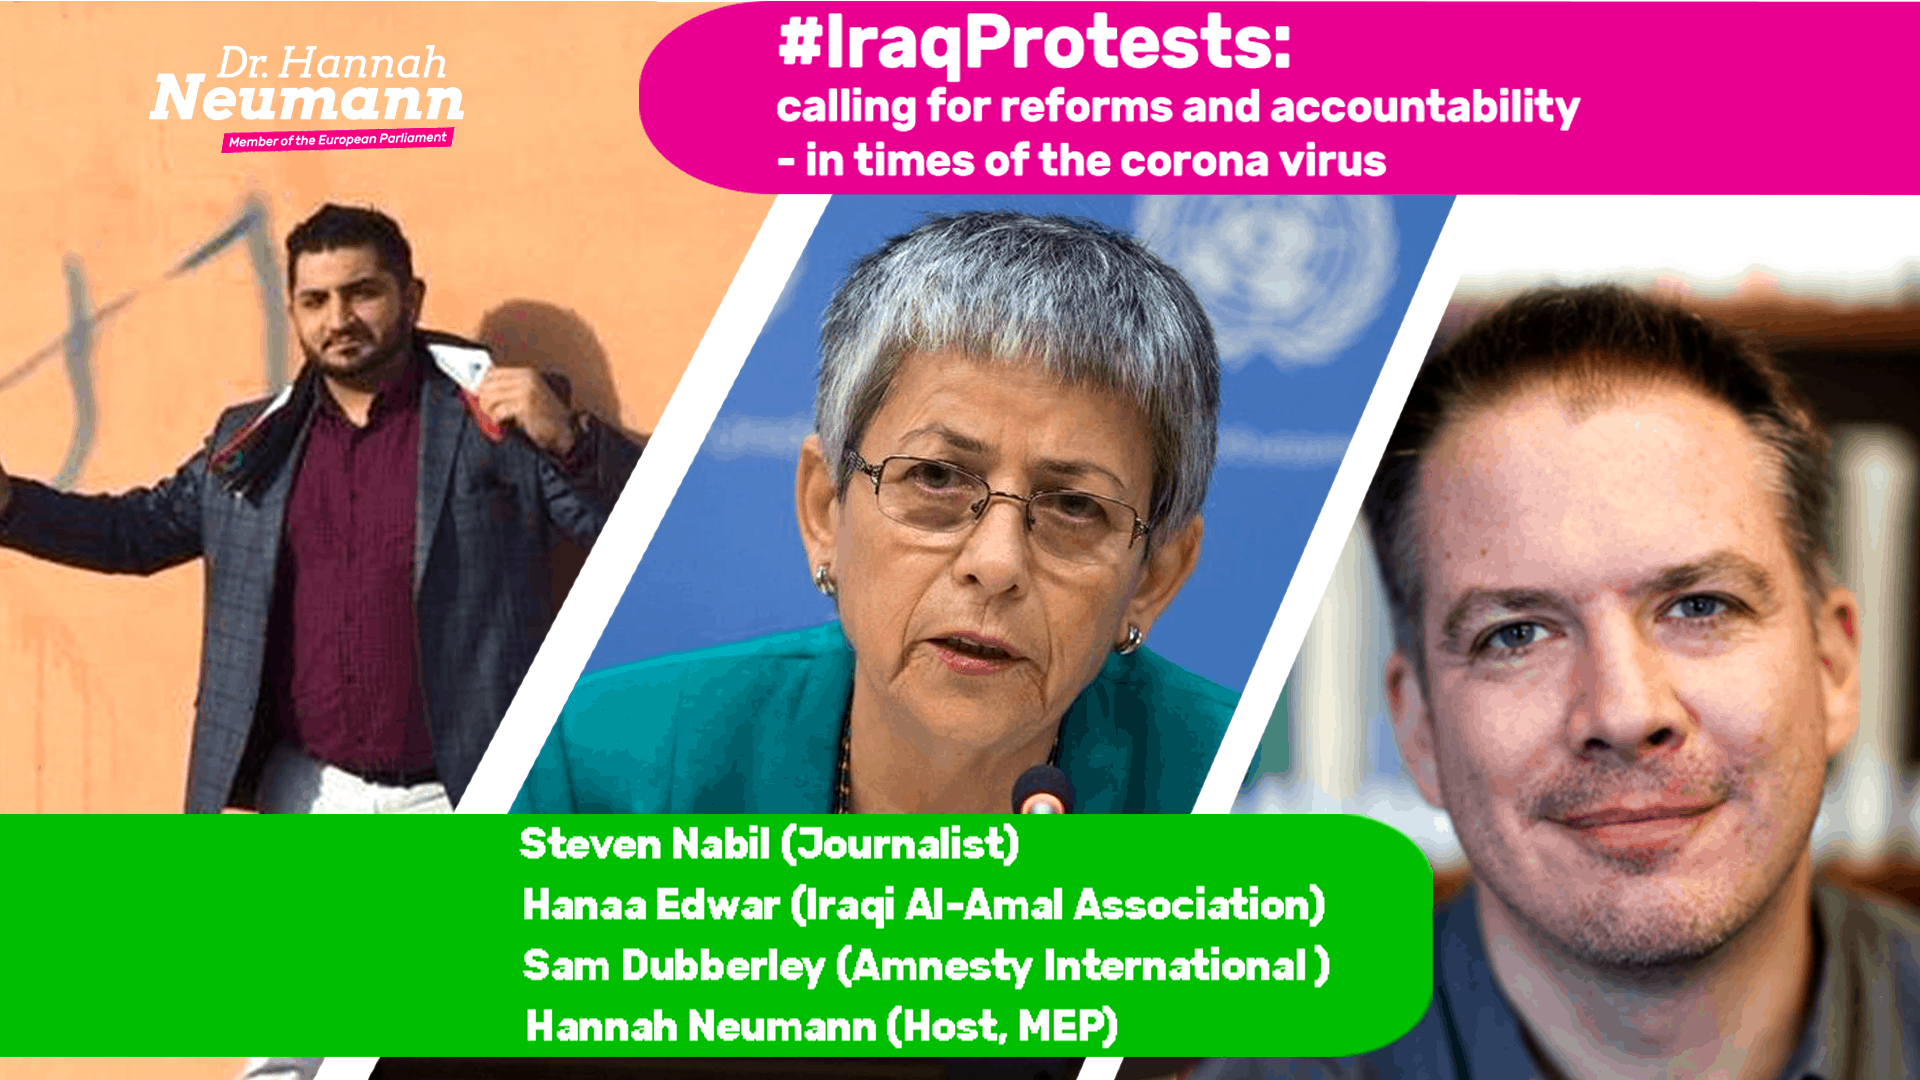 #IraqProstests Banner